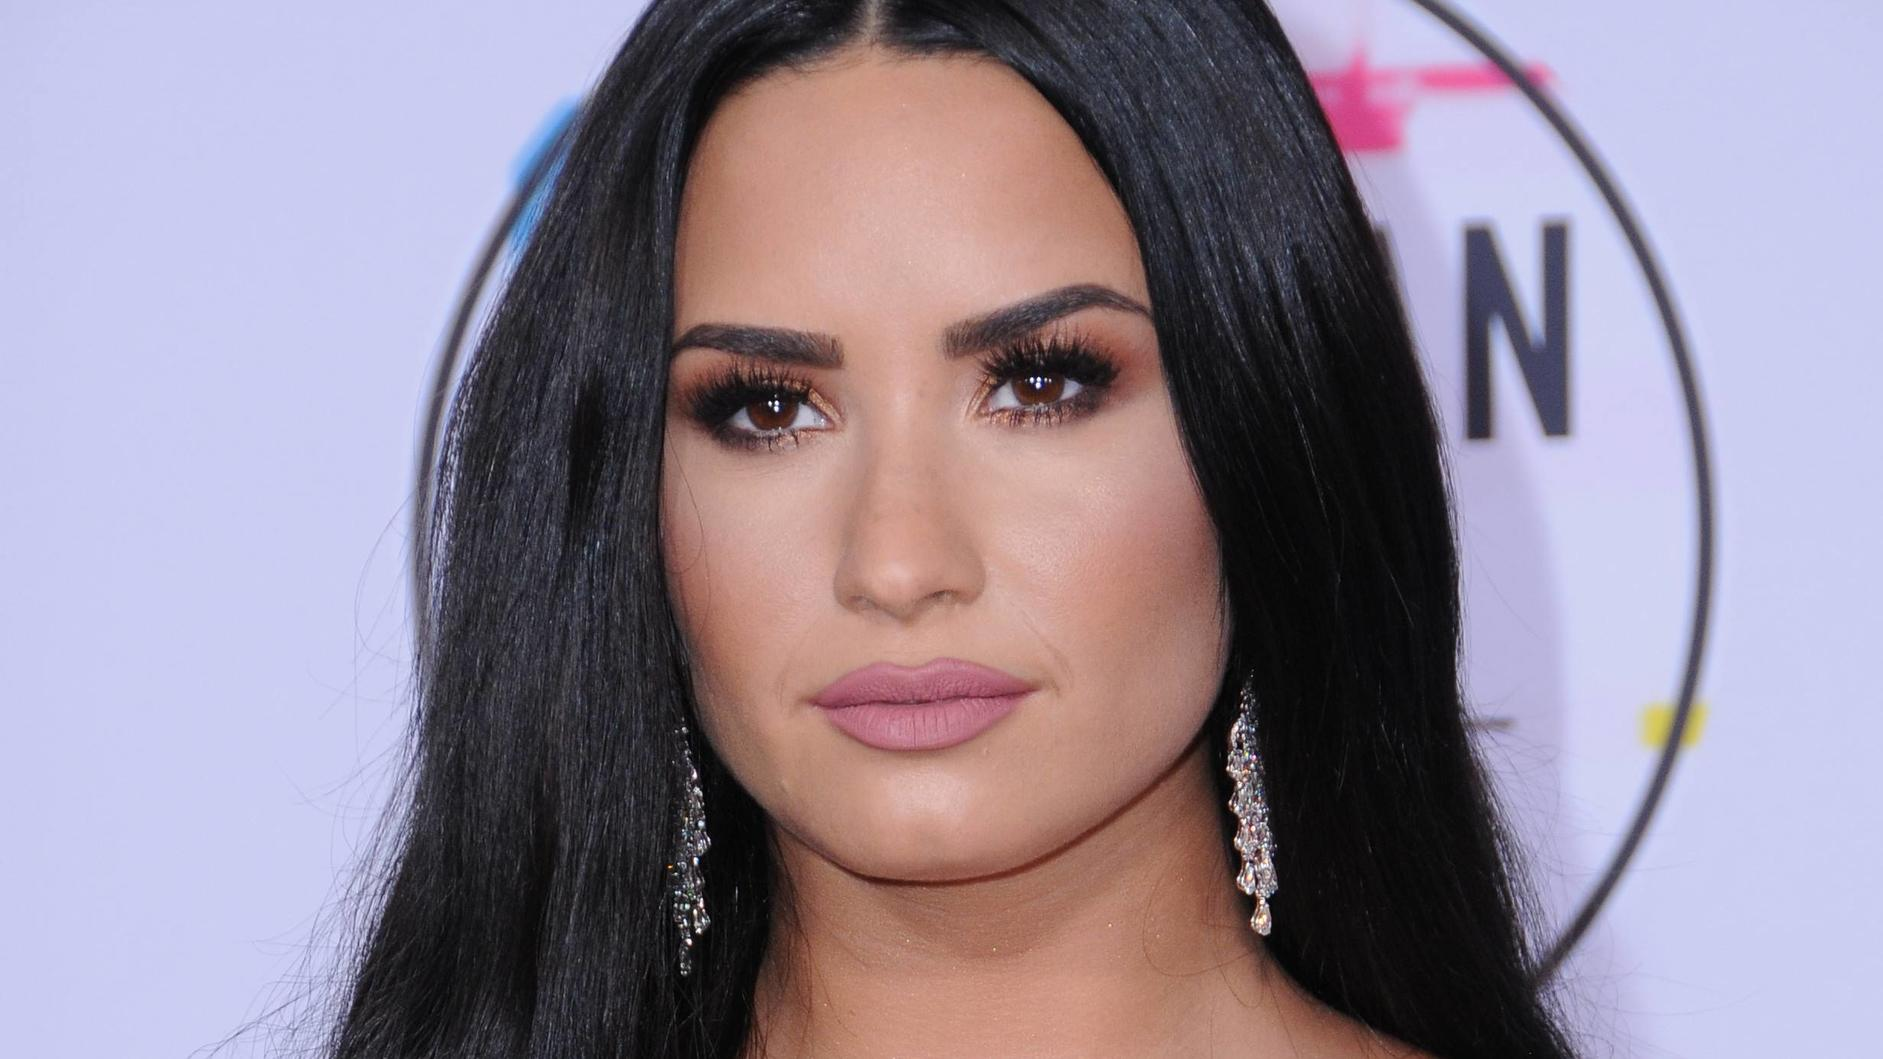 July 24, 2018 - Los Angeles, CA, U.S. - 24 July 2018 - Singer Demi Lovato has been hospitalized after suffering an apparent drug overdose. File Photo: 19 November 2017 - Los Angeles, California - Demi Lovato. 2017 American Music Awards held at Micro